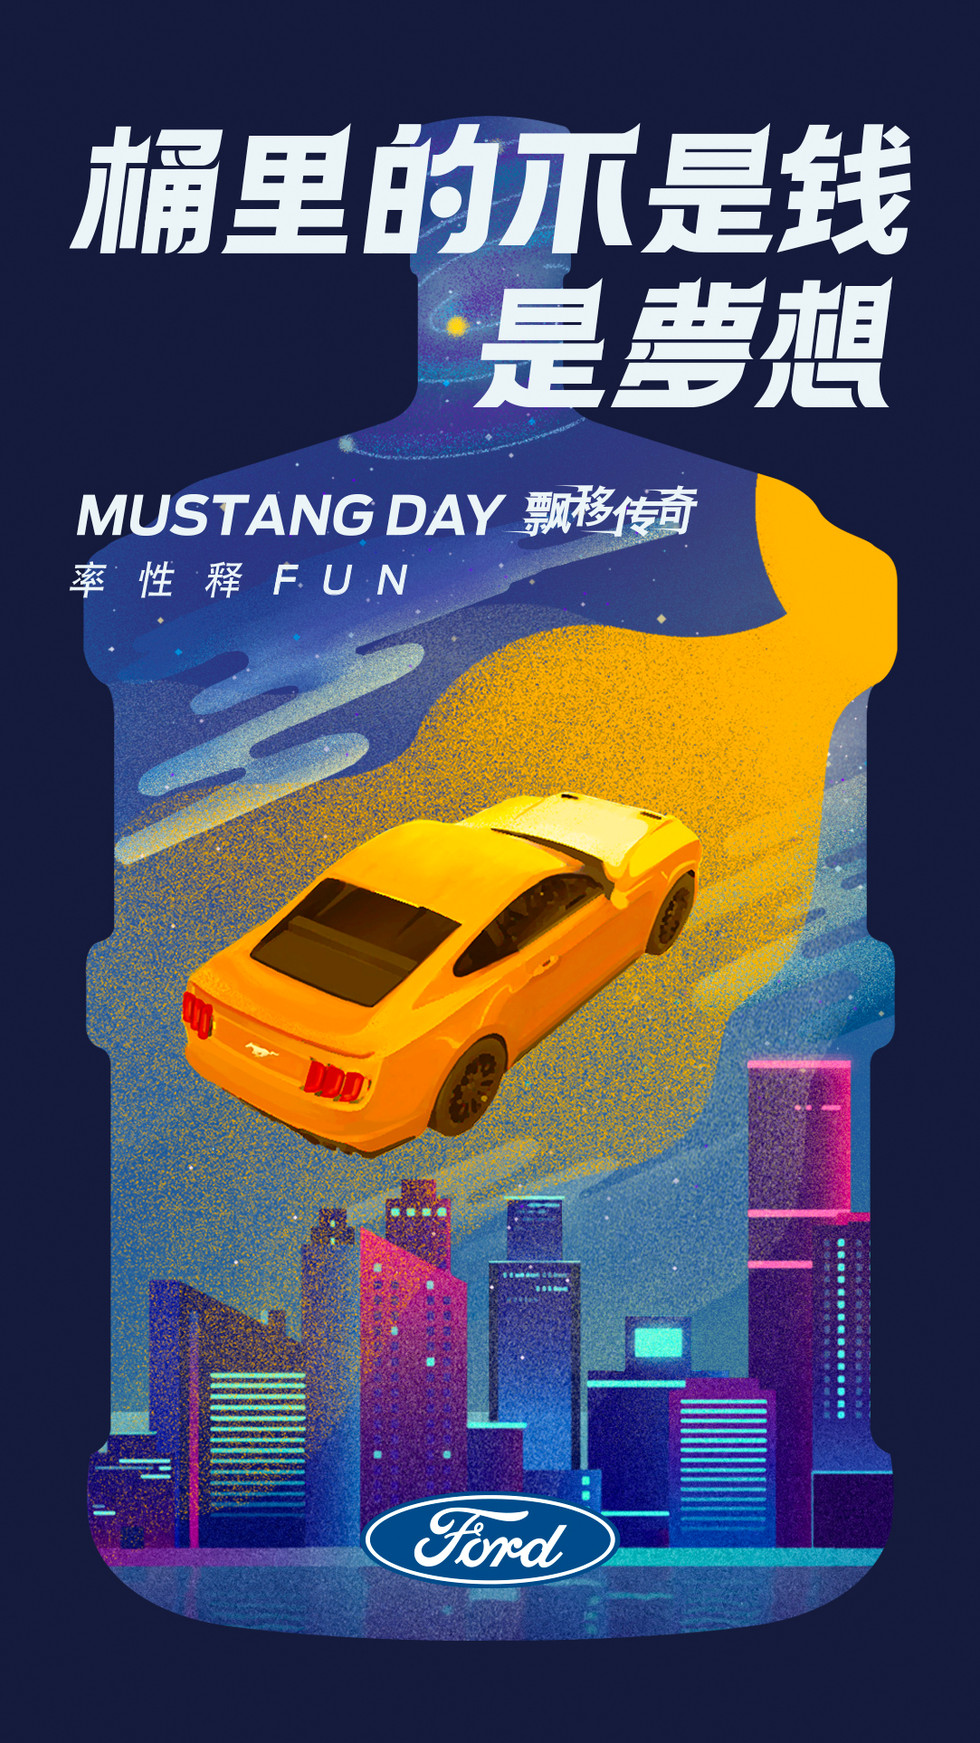 Mustang Day